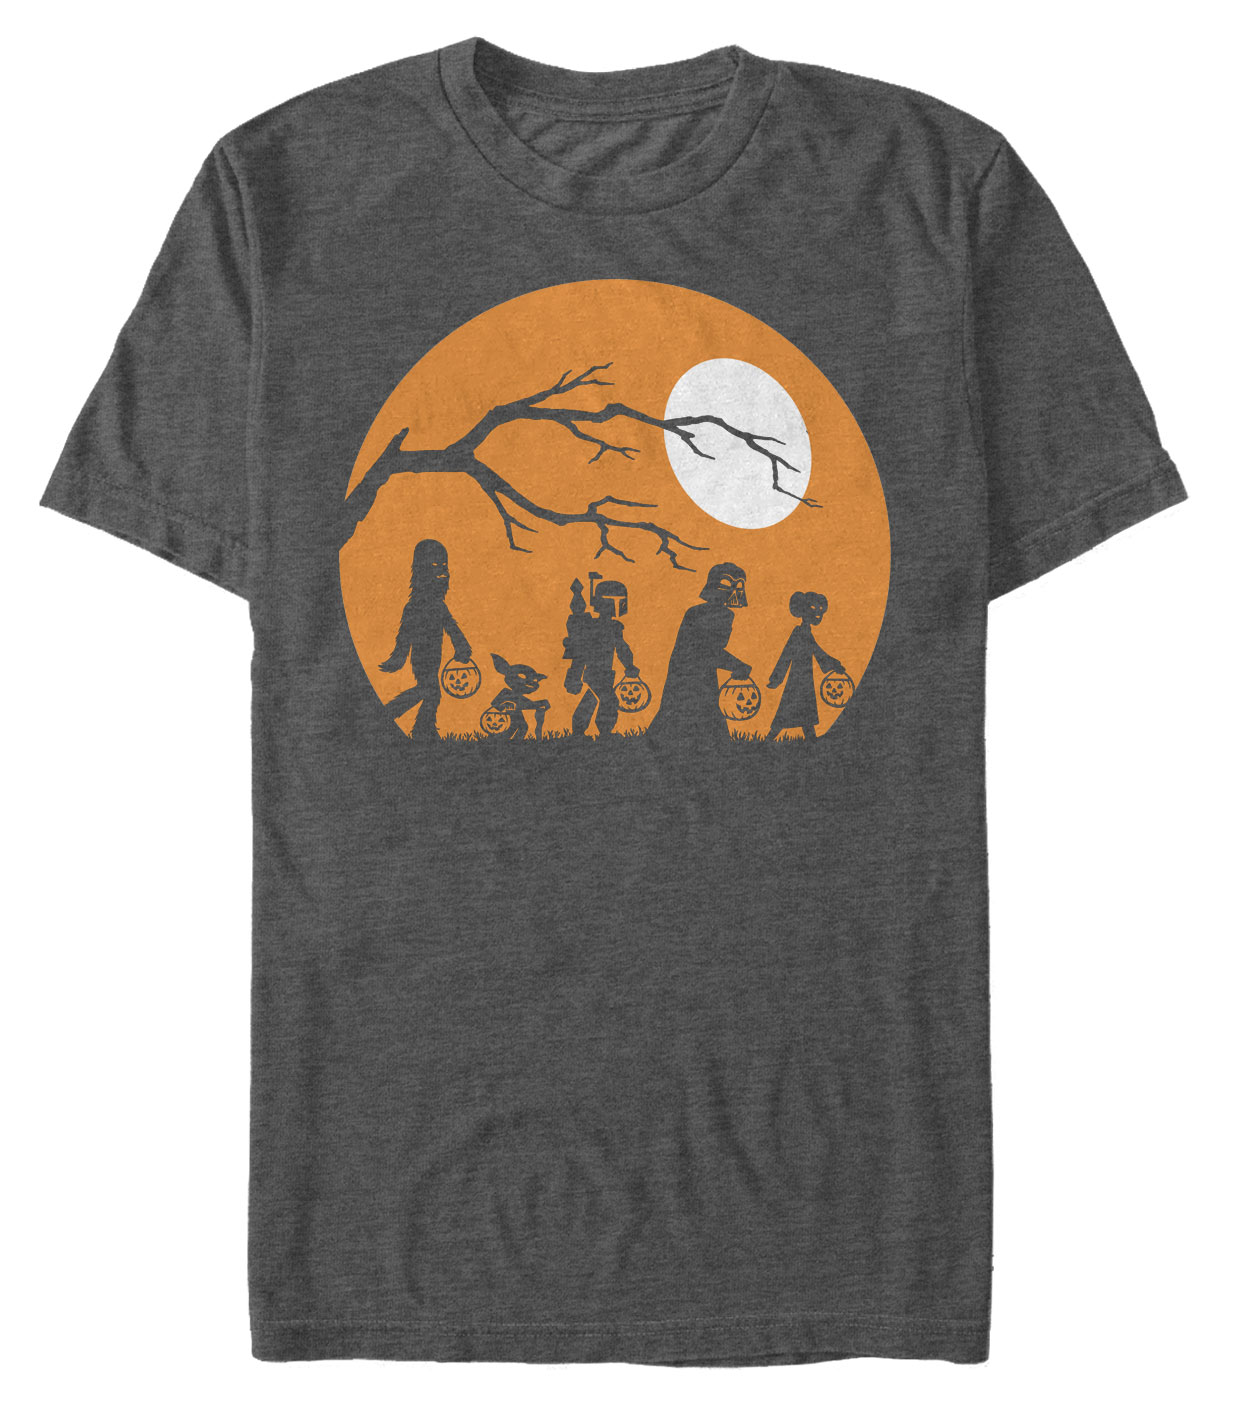 Star Wars Halloween Trick-or-Treat T-Shirt